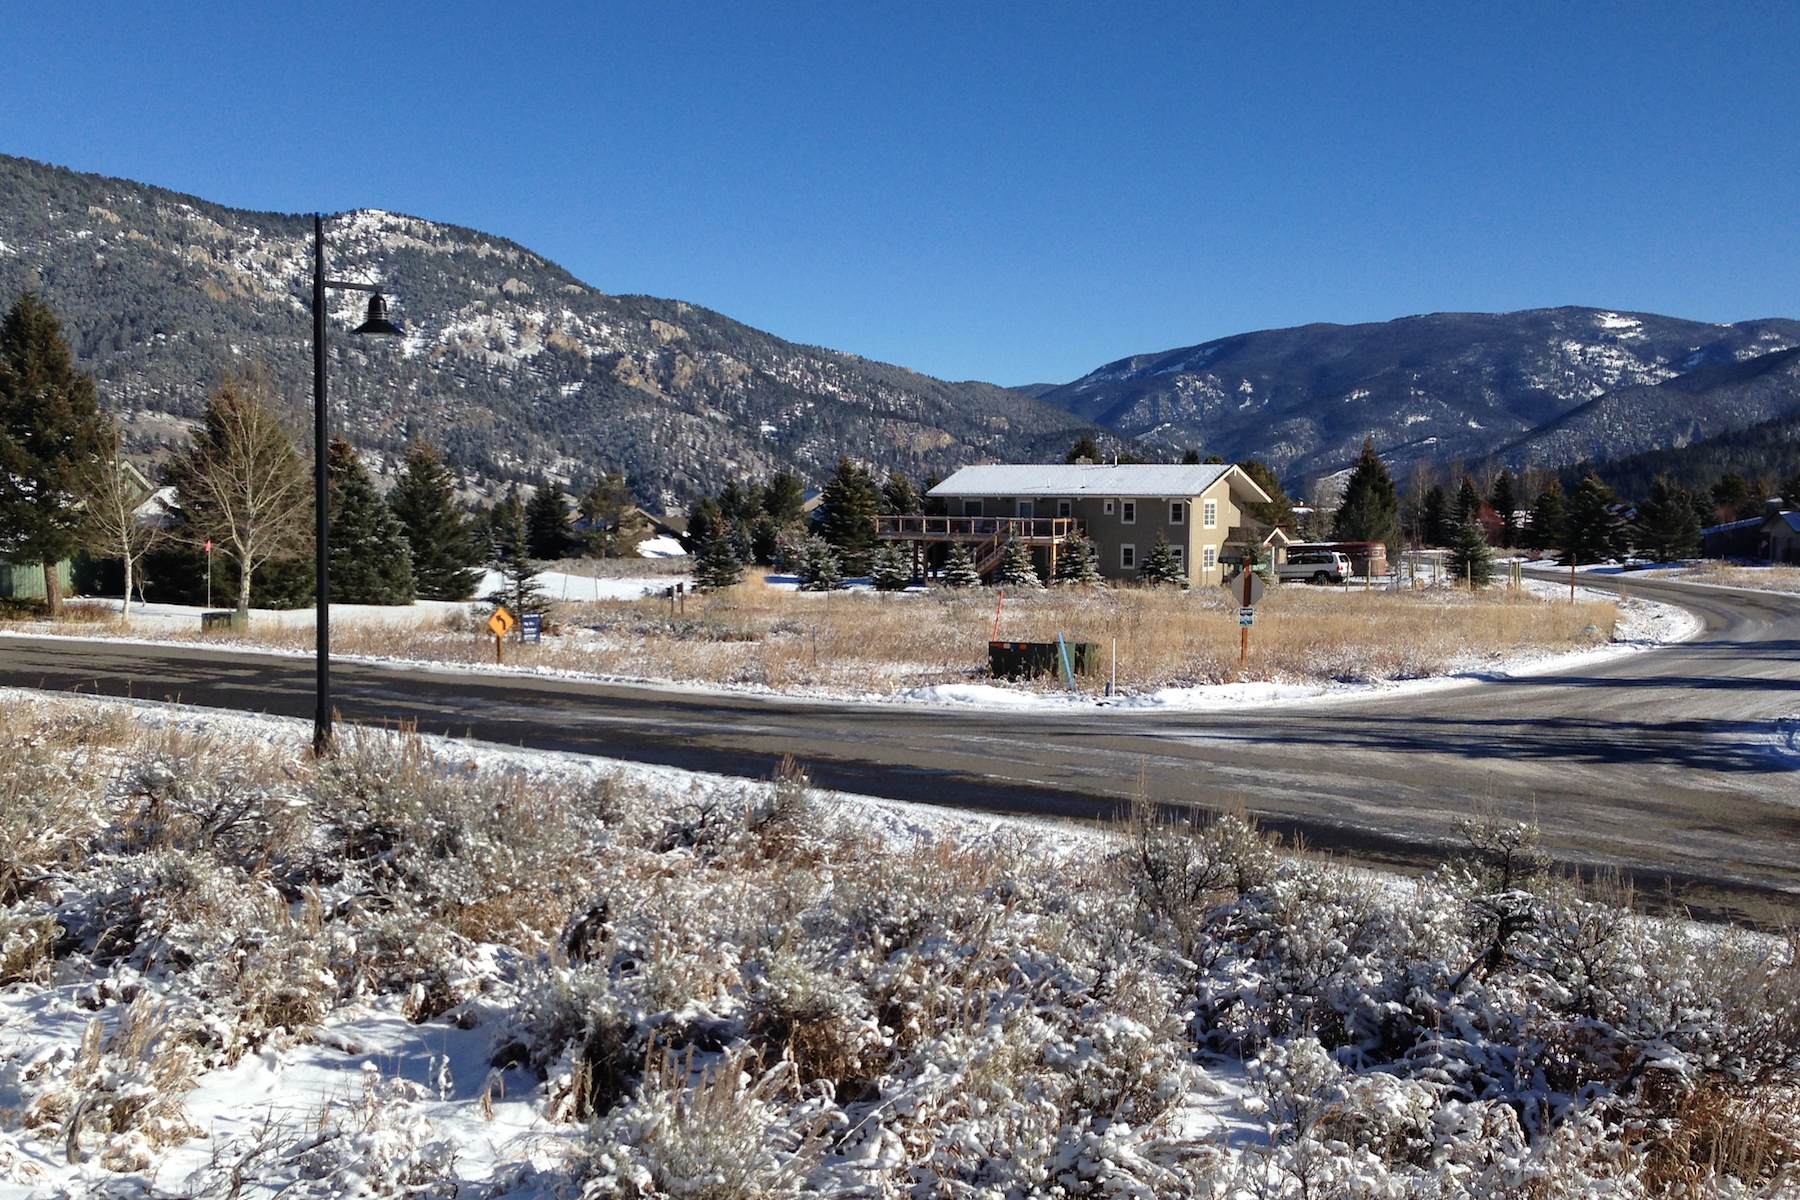 Land for Sale at Golf Course - Meadow Village Homesite Two Moons Road Meadow Village Blk 3, Lot 5 Big Sky, Montana 59716 United States